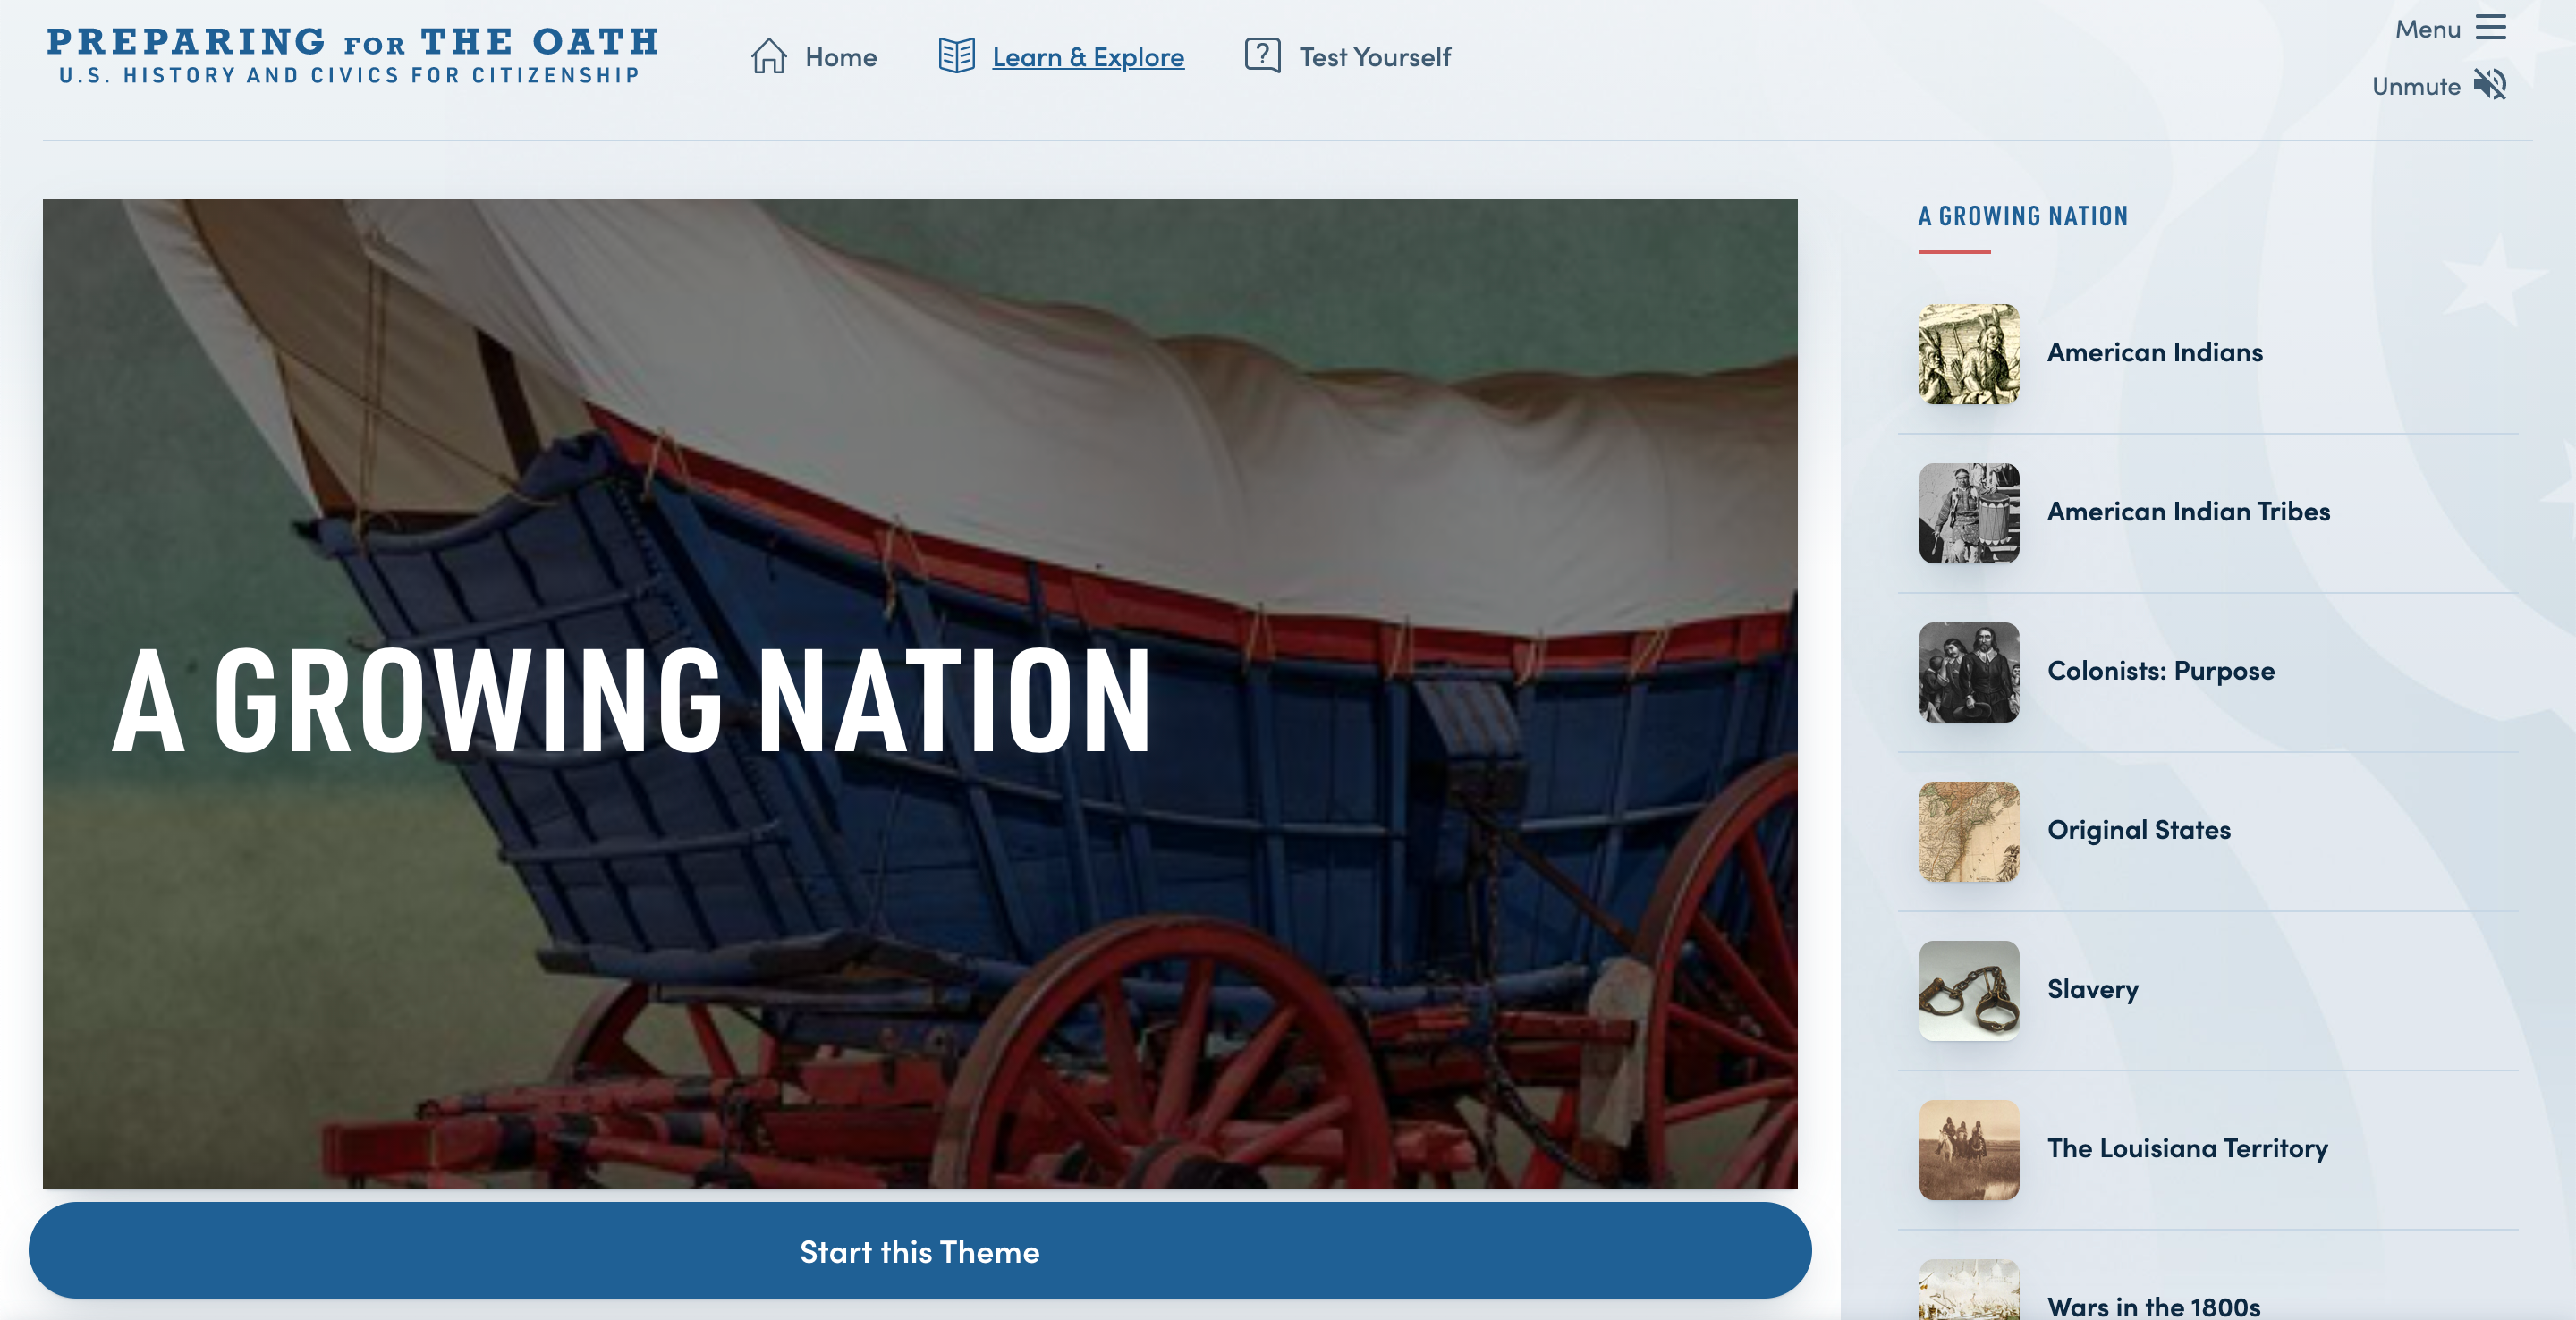 Thumbnail image of Preparing for the Oath: A Growing Nation resource